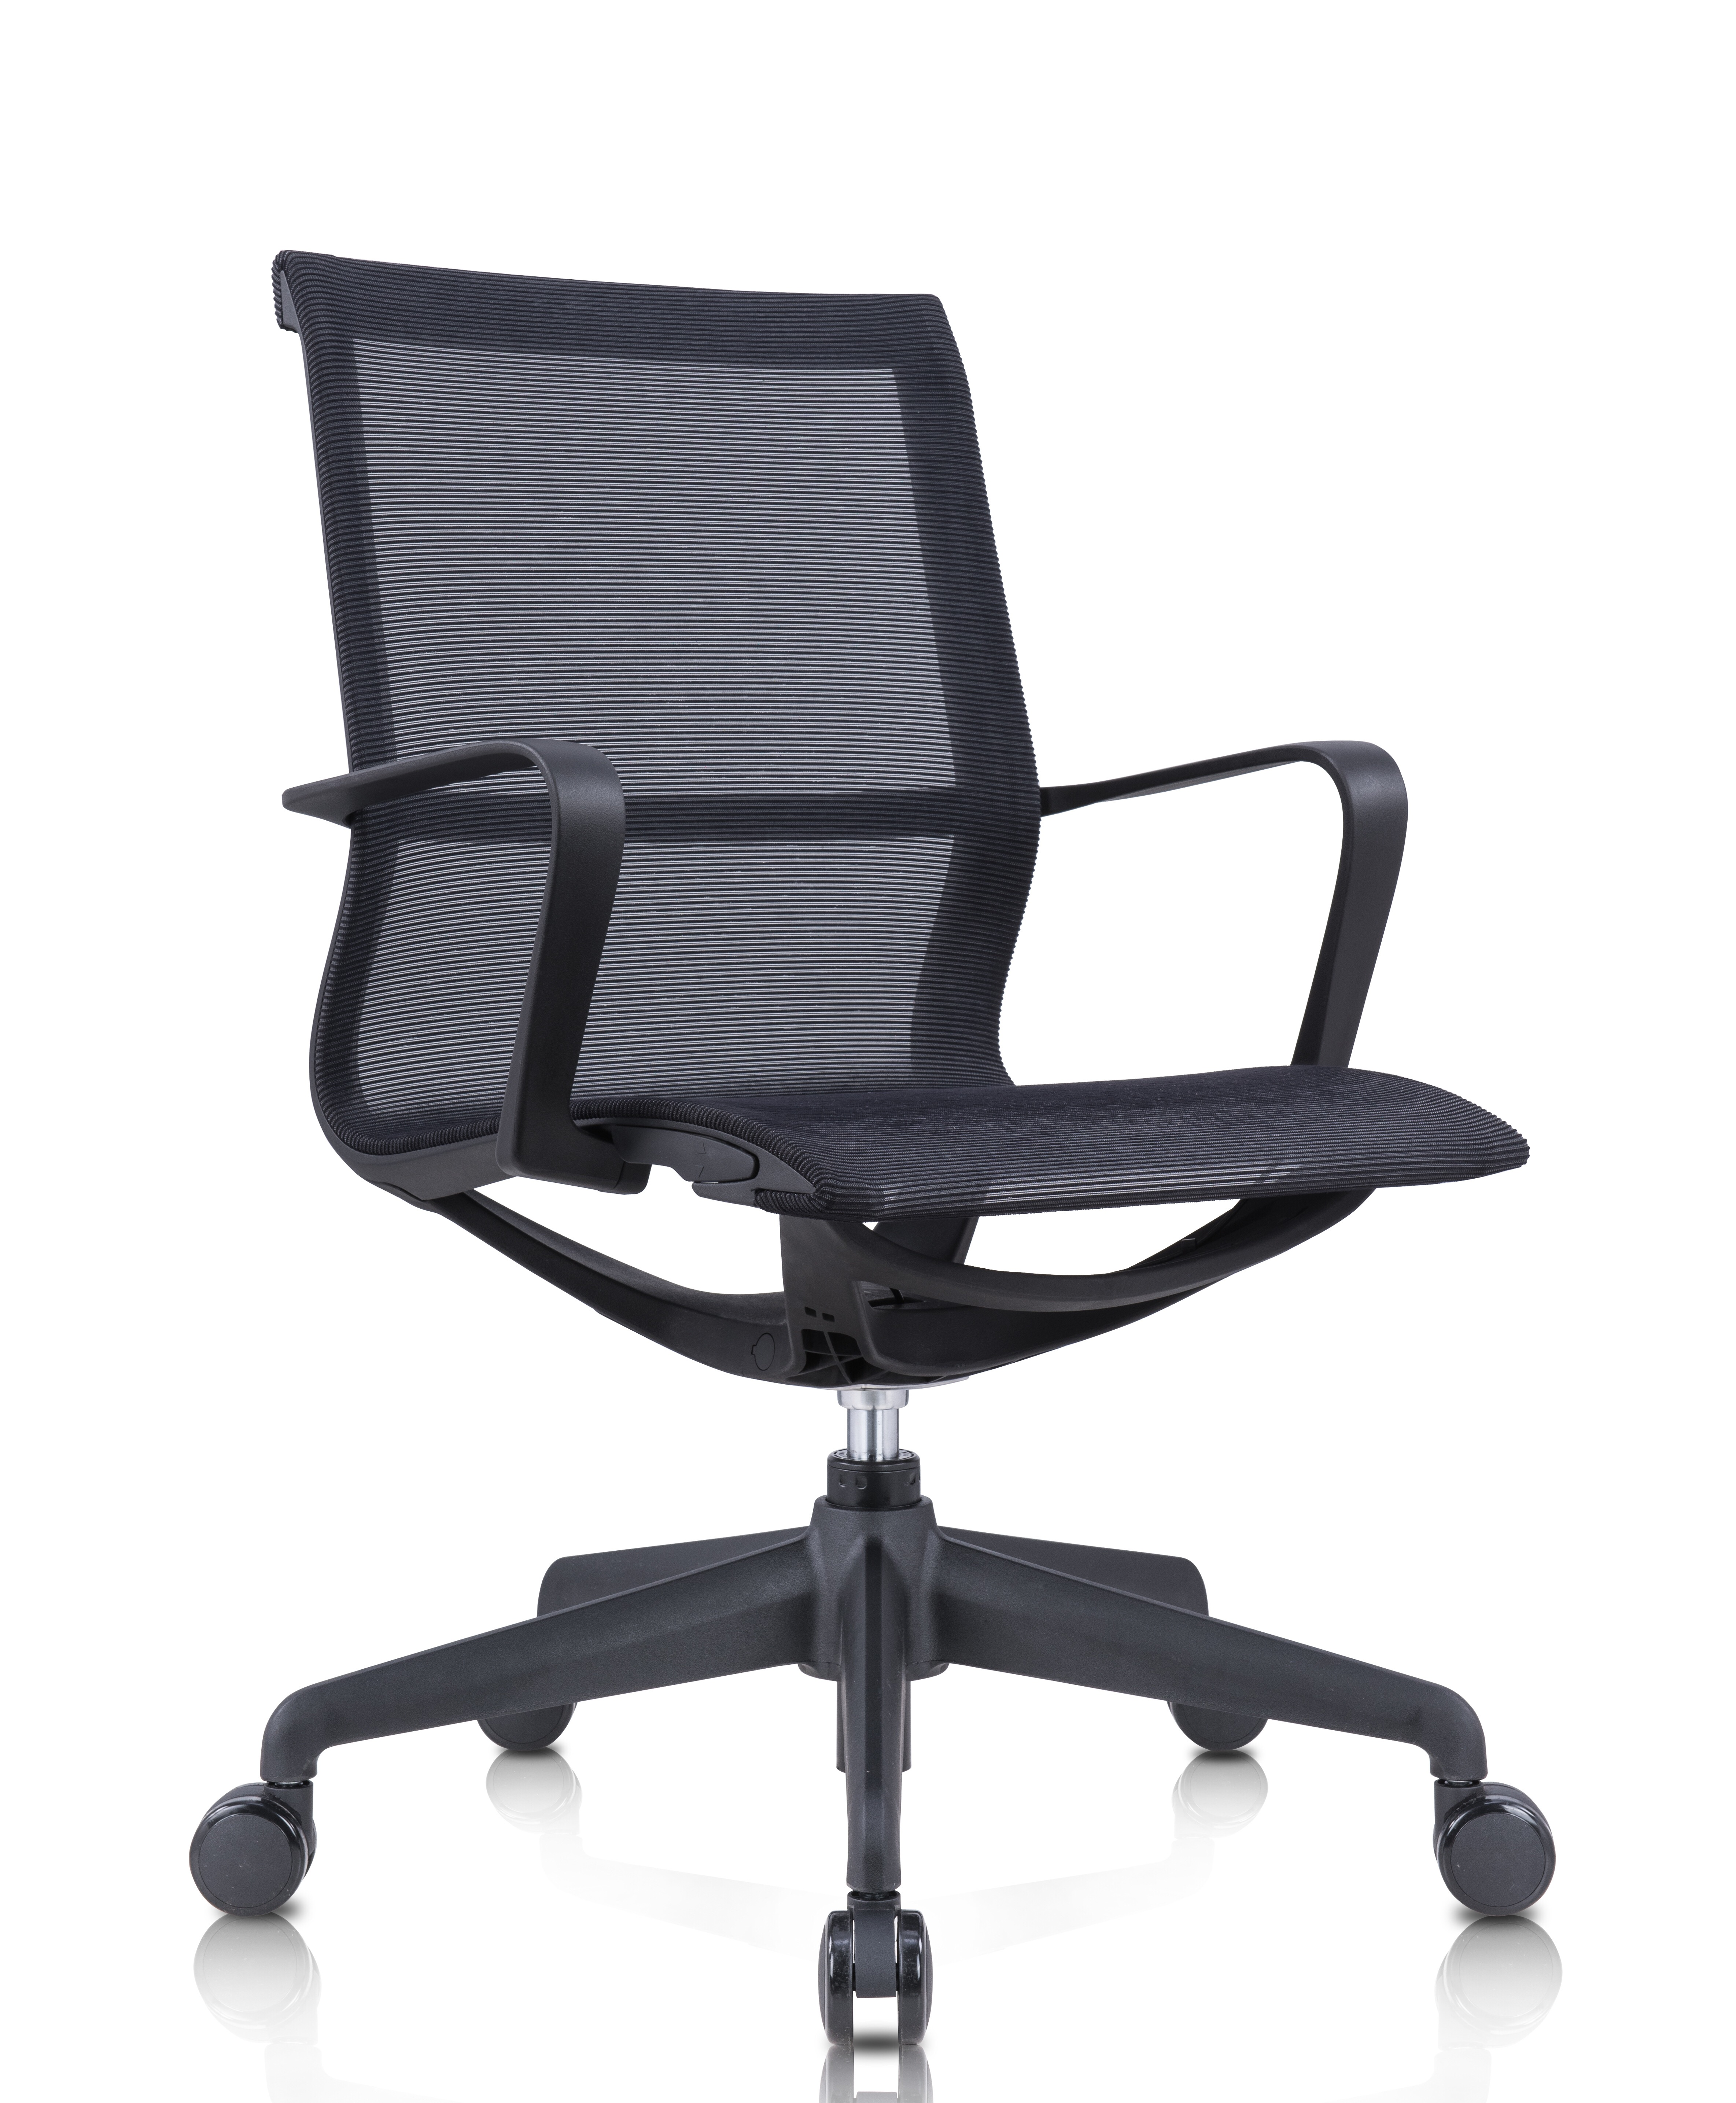 Office Furniture Full Mesh Popular Staff Chair CH-285B Featured Image